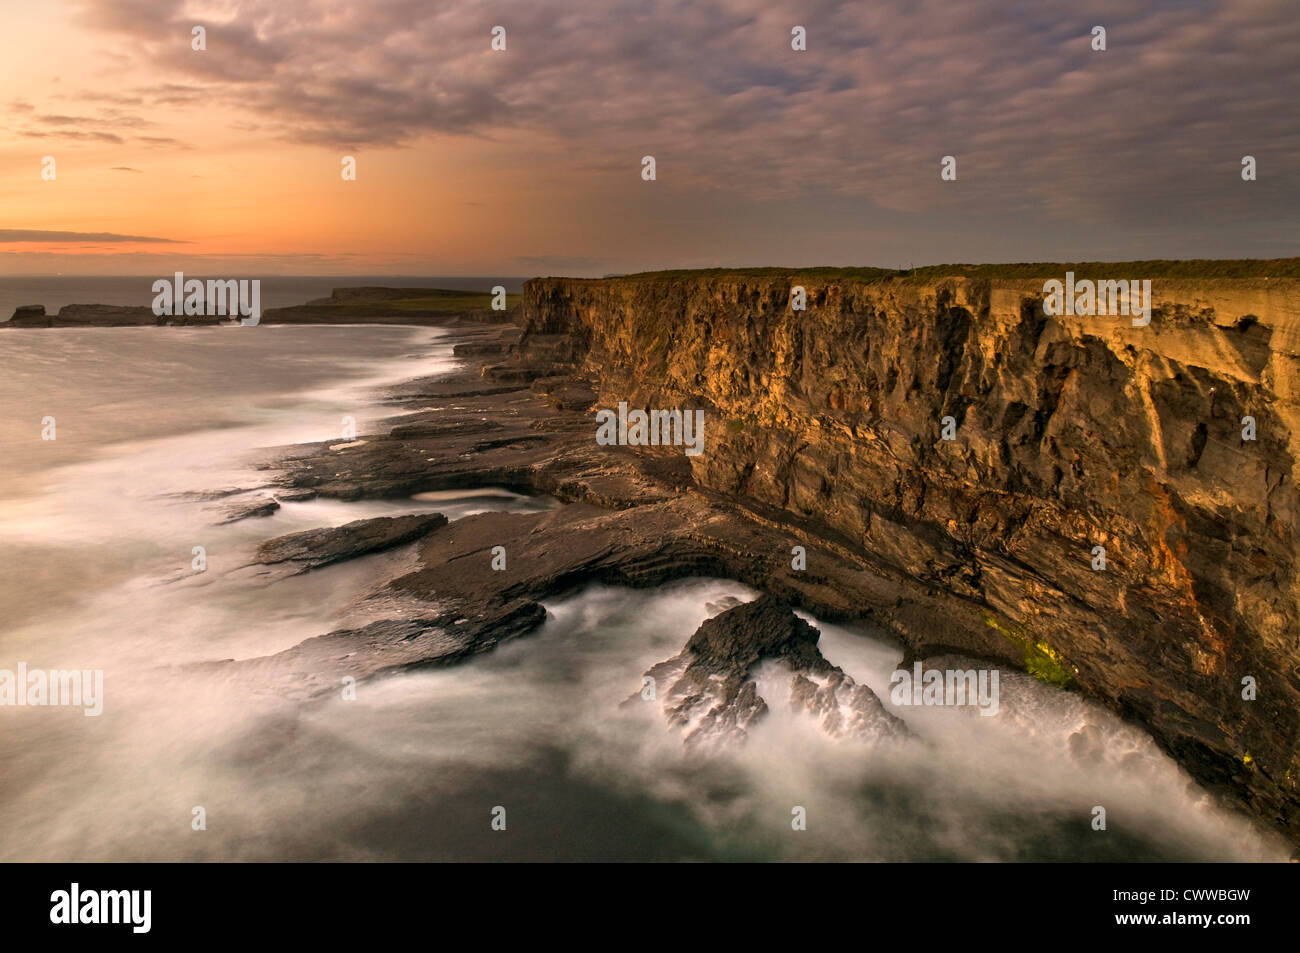 Fog rolling up to rocky coastal cliffs - Stock Image